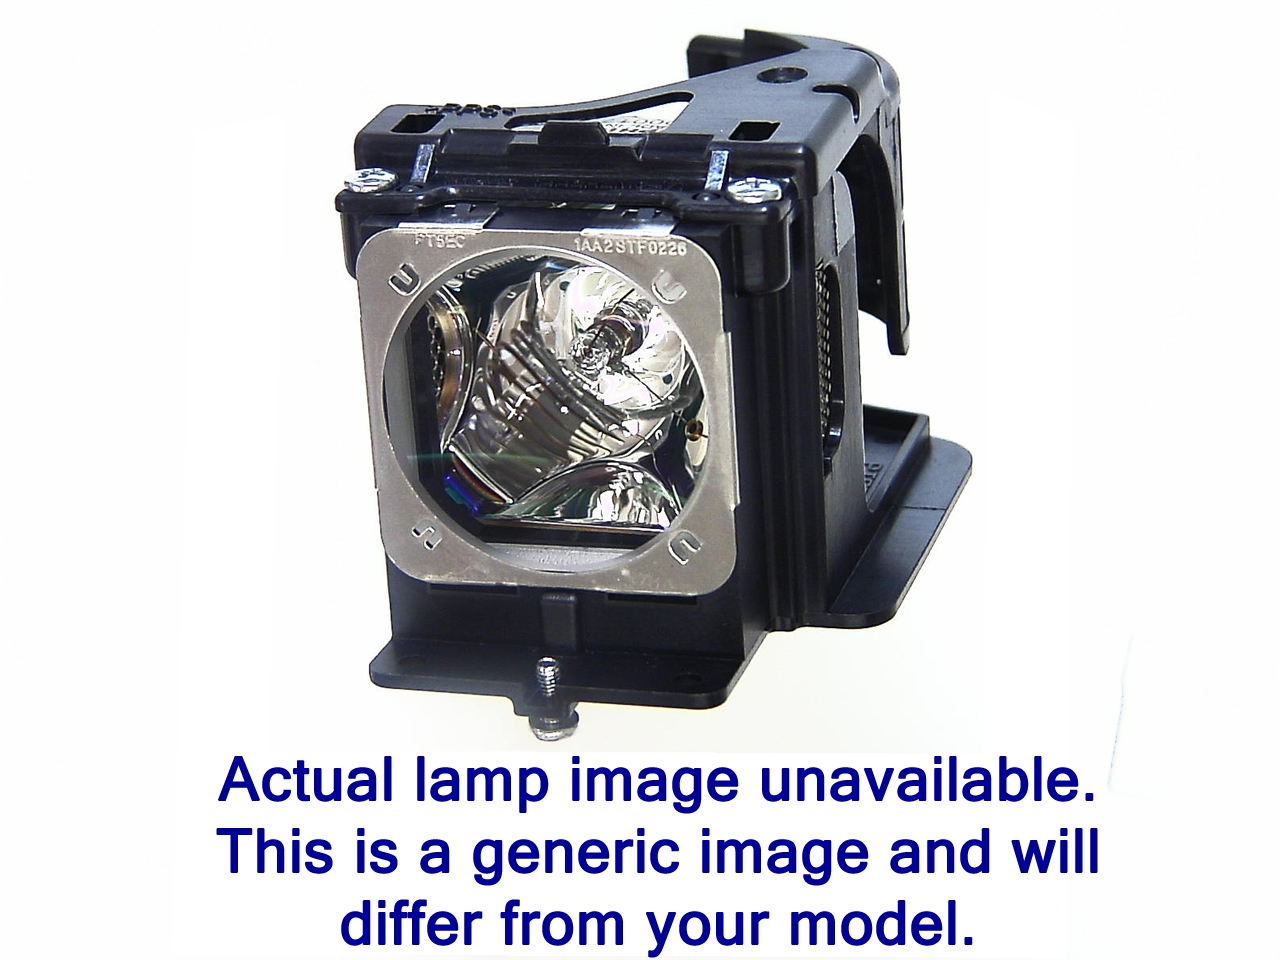 Smart Lamp for Serial Numbers 2101 a 2600 inclusive For EIKI LC-SB15 (XB2501 Lamp) Proyector.